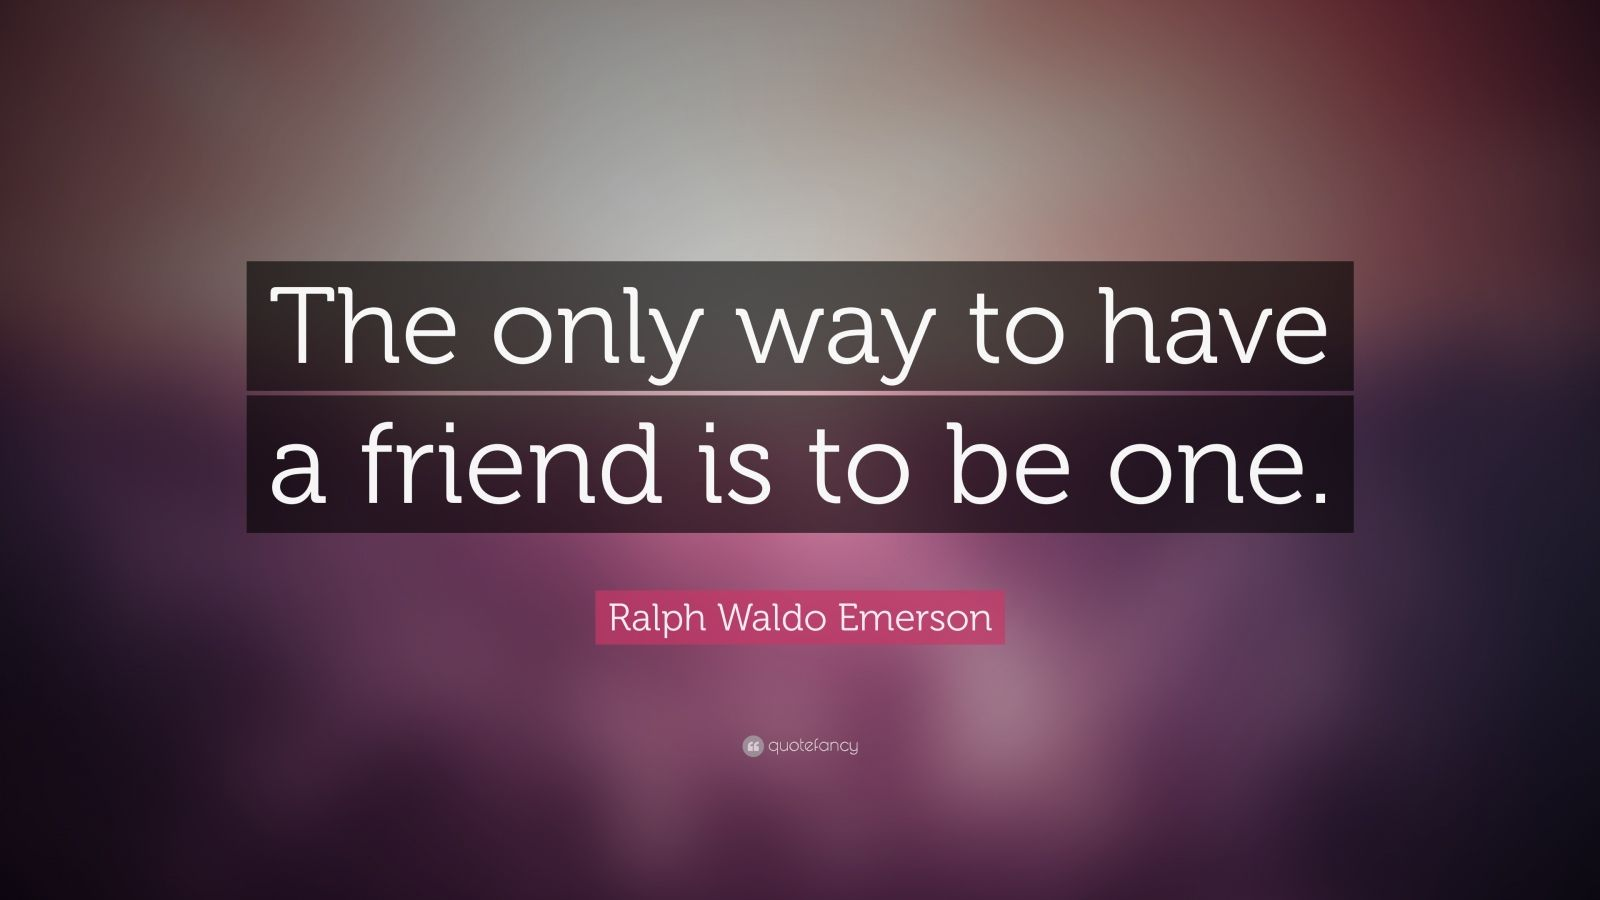 Ralph Waldo Emerson Quotes 500 Wallpapers